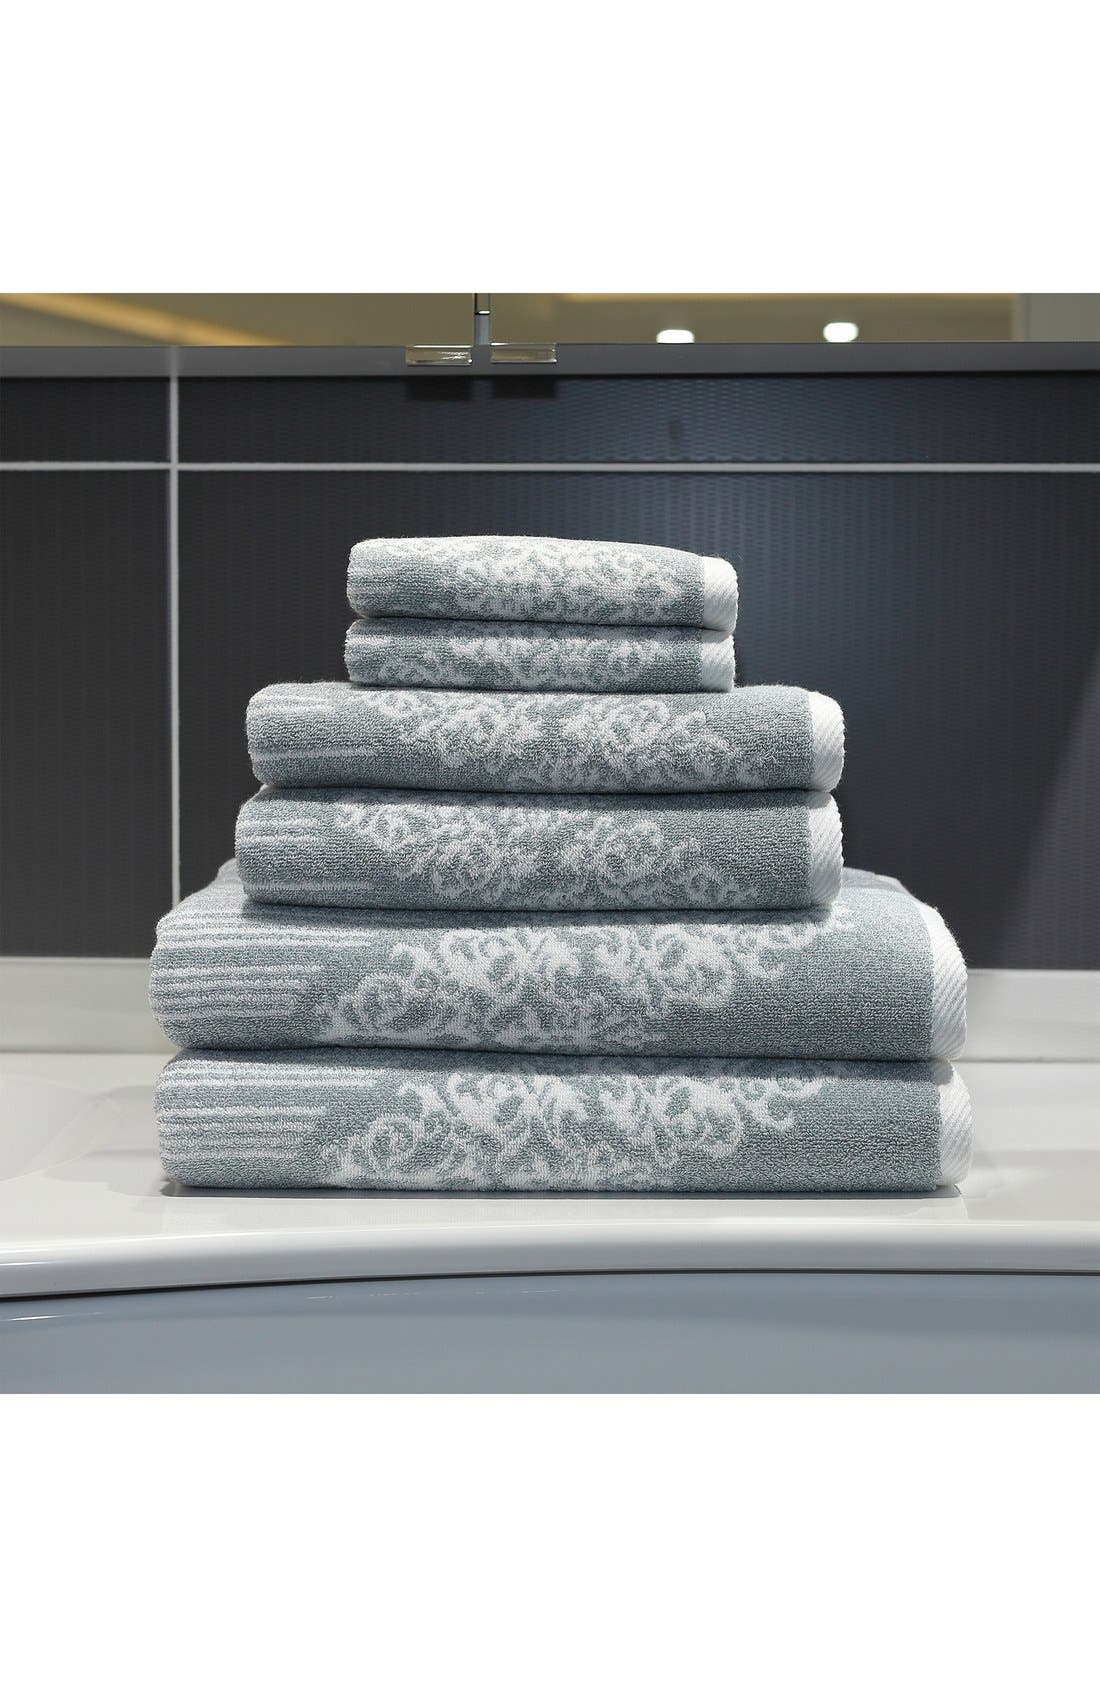 Linum 'Gioia' Bath Towels, Hand Towels & Washcloths,                             Alternate thumbnail 2, color,                             440